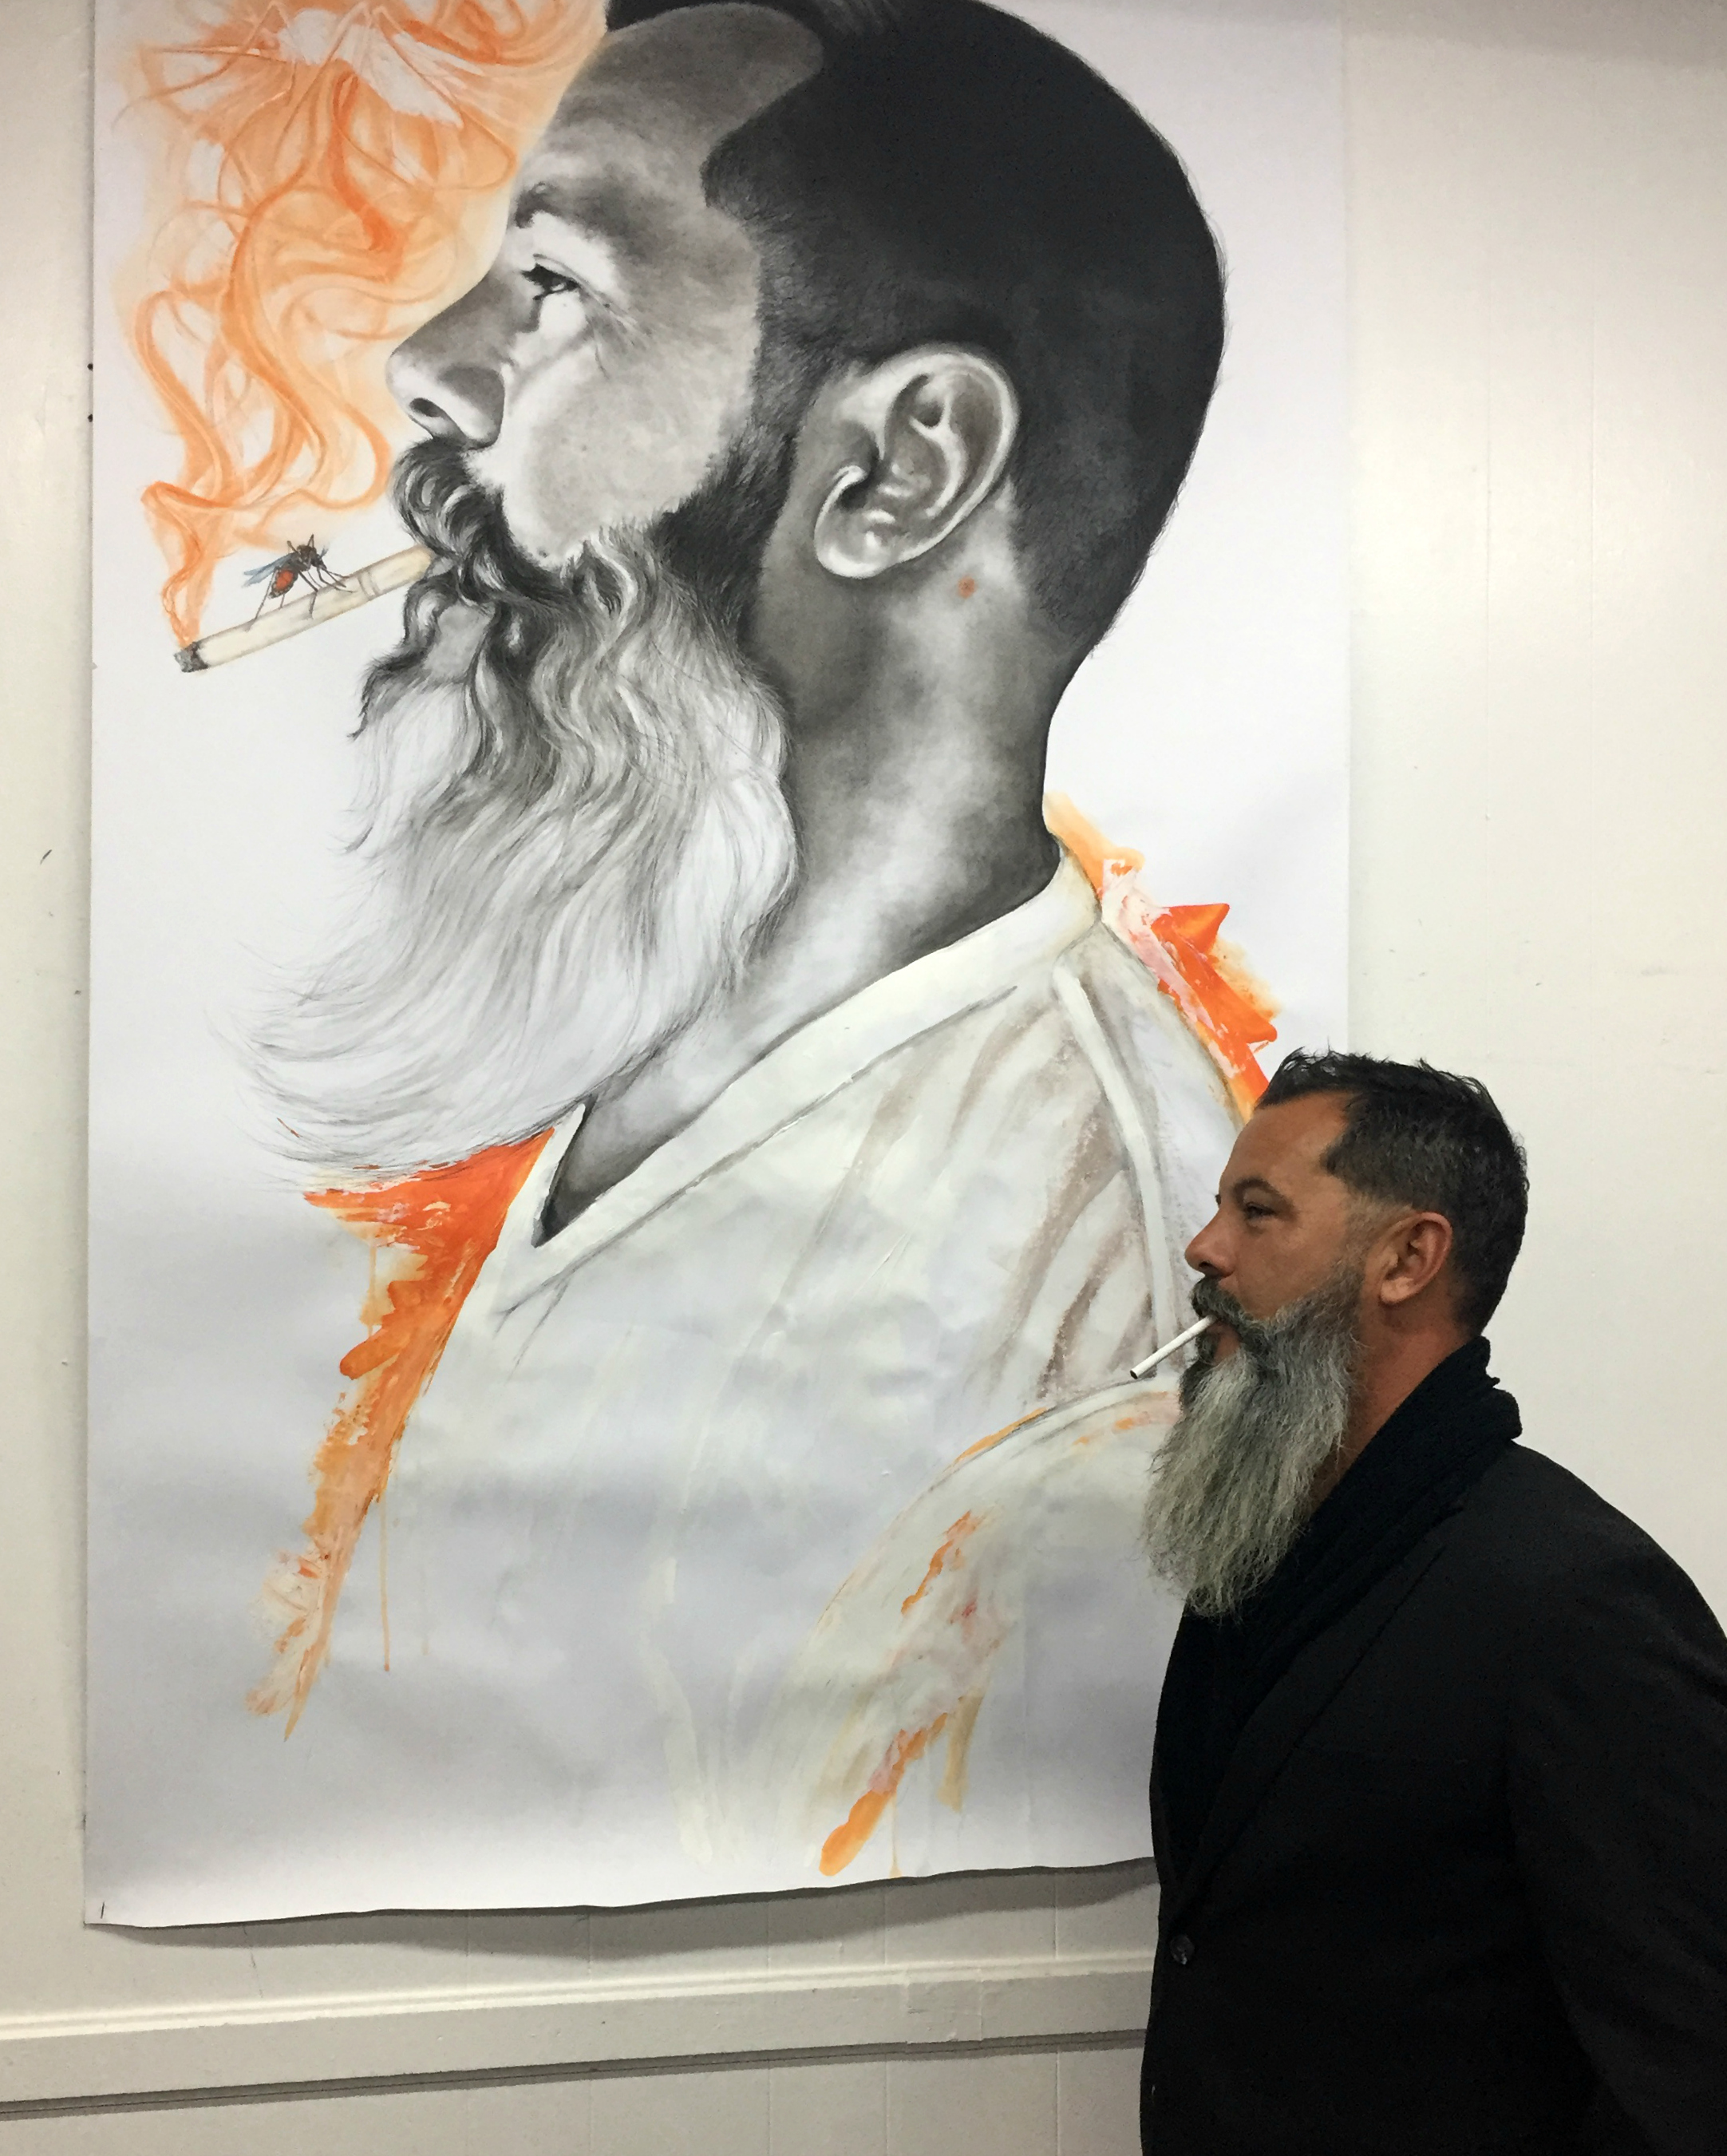 Artist Anthony Hernandez in front of a portrait created by Anthony Burks Sr. To view more of Burks work, please visit https://www.anthonyburkscollection.com/